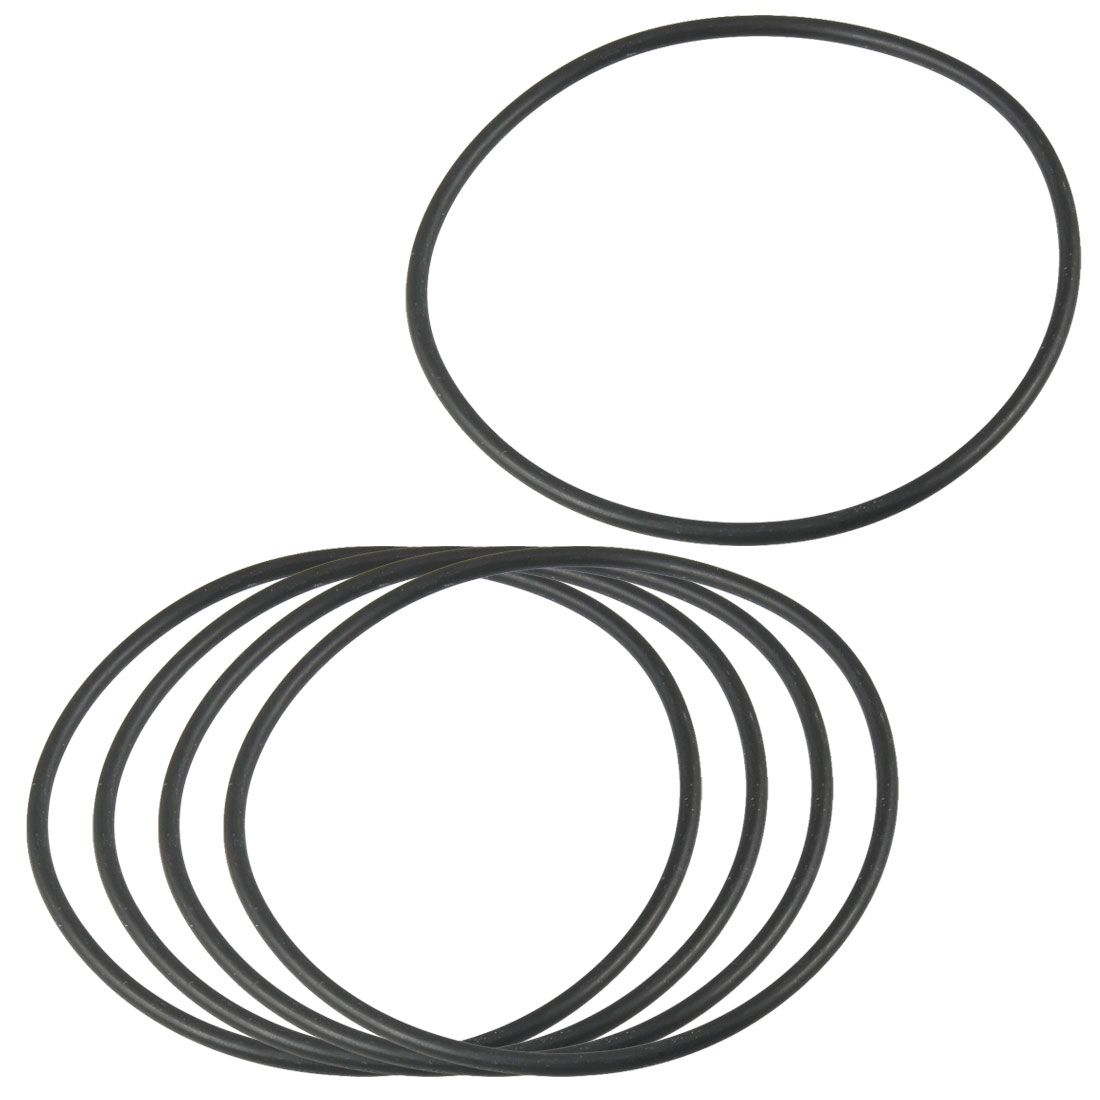 5 PCS 78mm x 2.4mm Rubber Sealing Oil Filter O Rings Gaskets